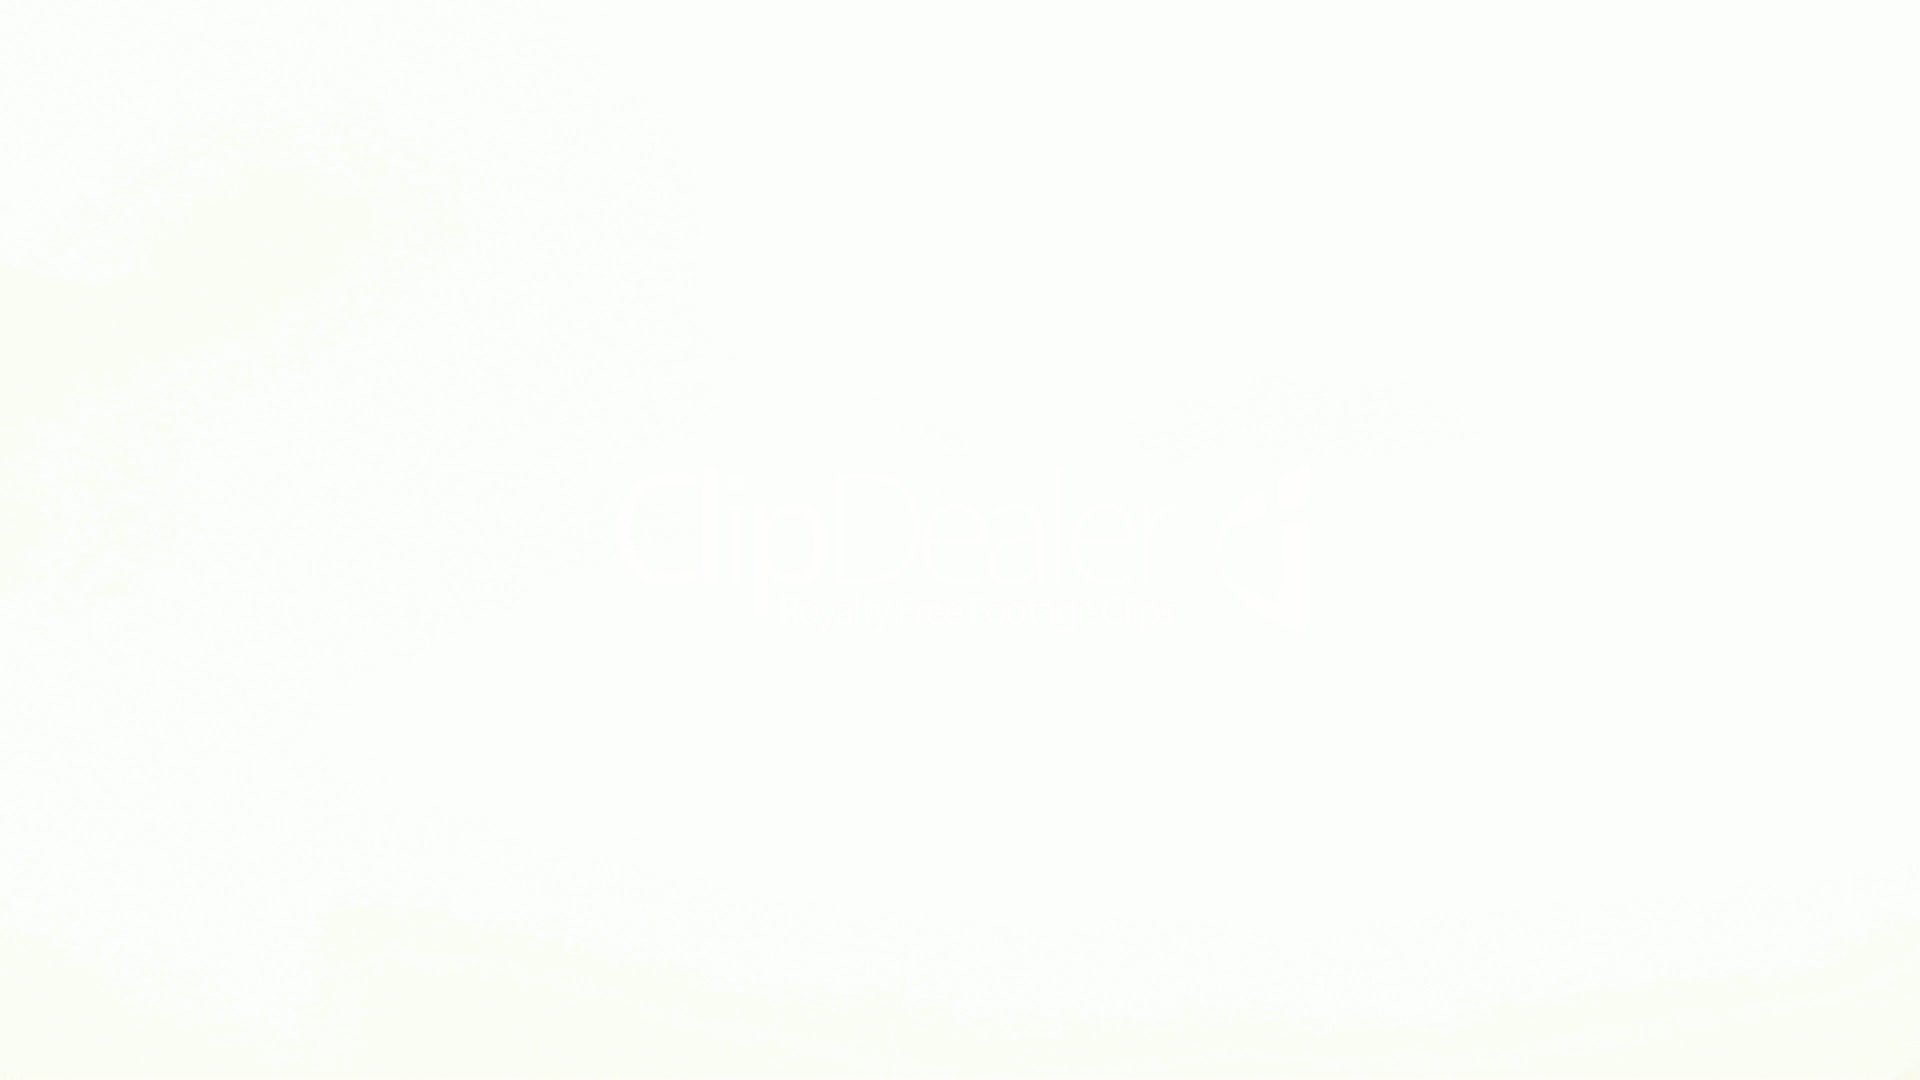 White Background Wallpaper Wallpapersafari